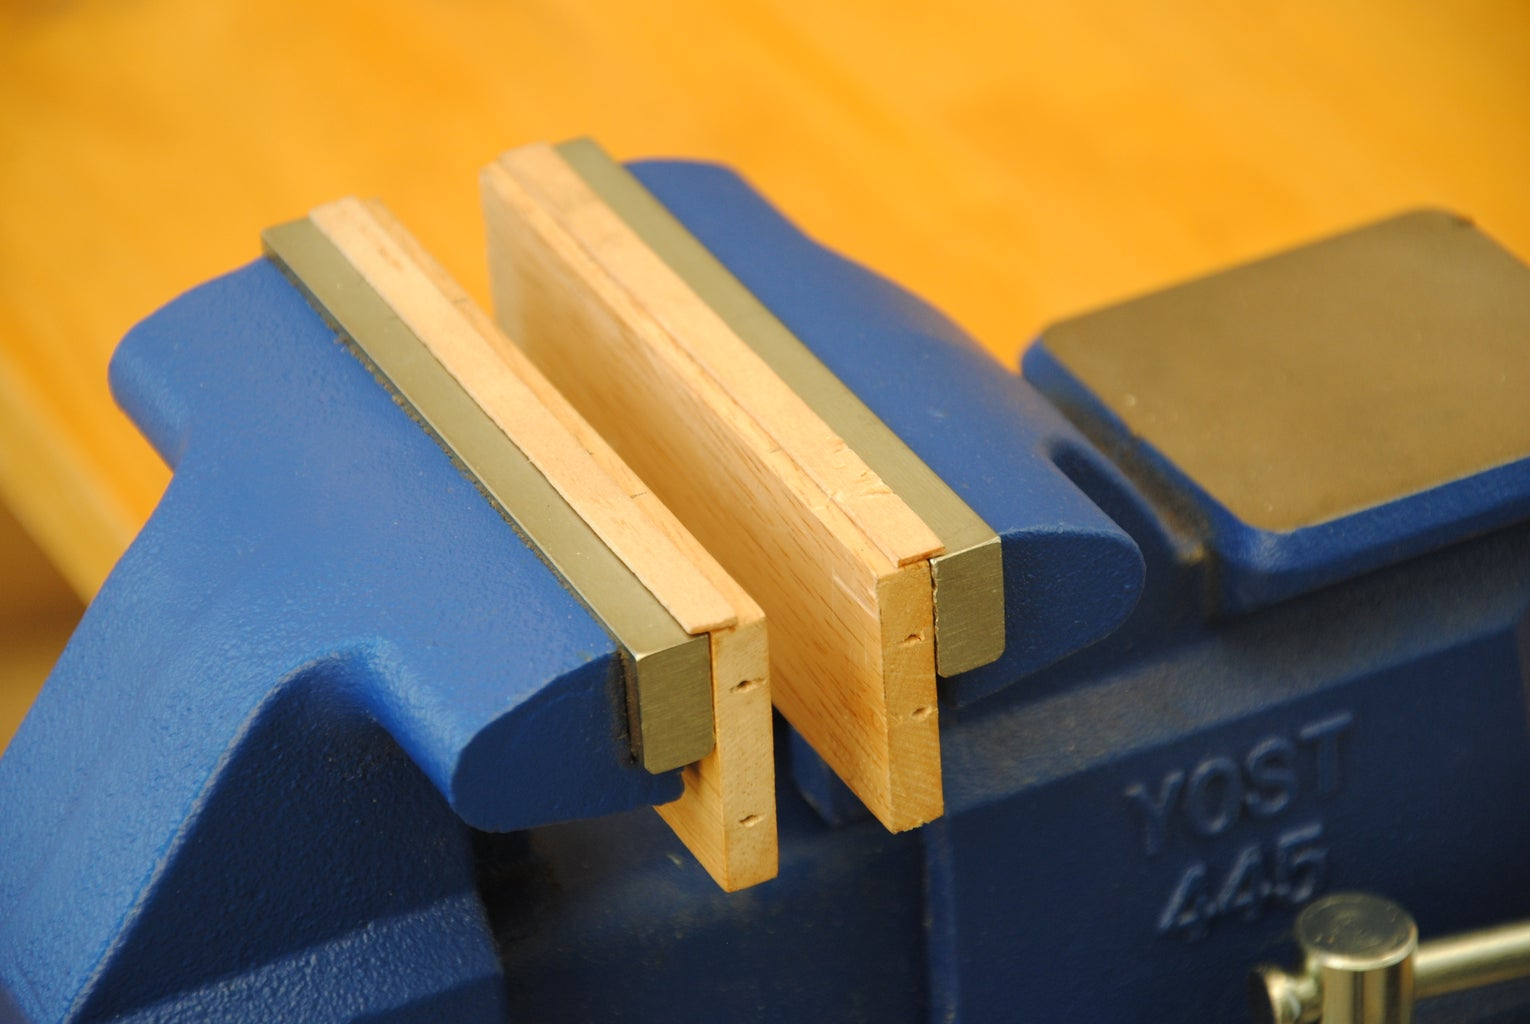 How to Make Magnetic Wooden Soft Jaws